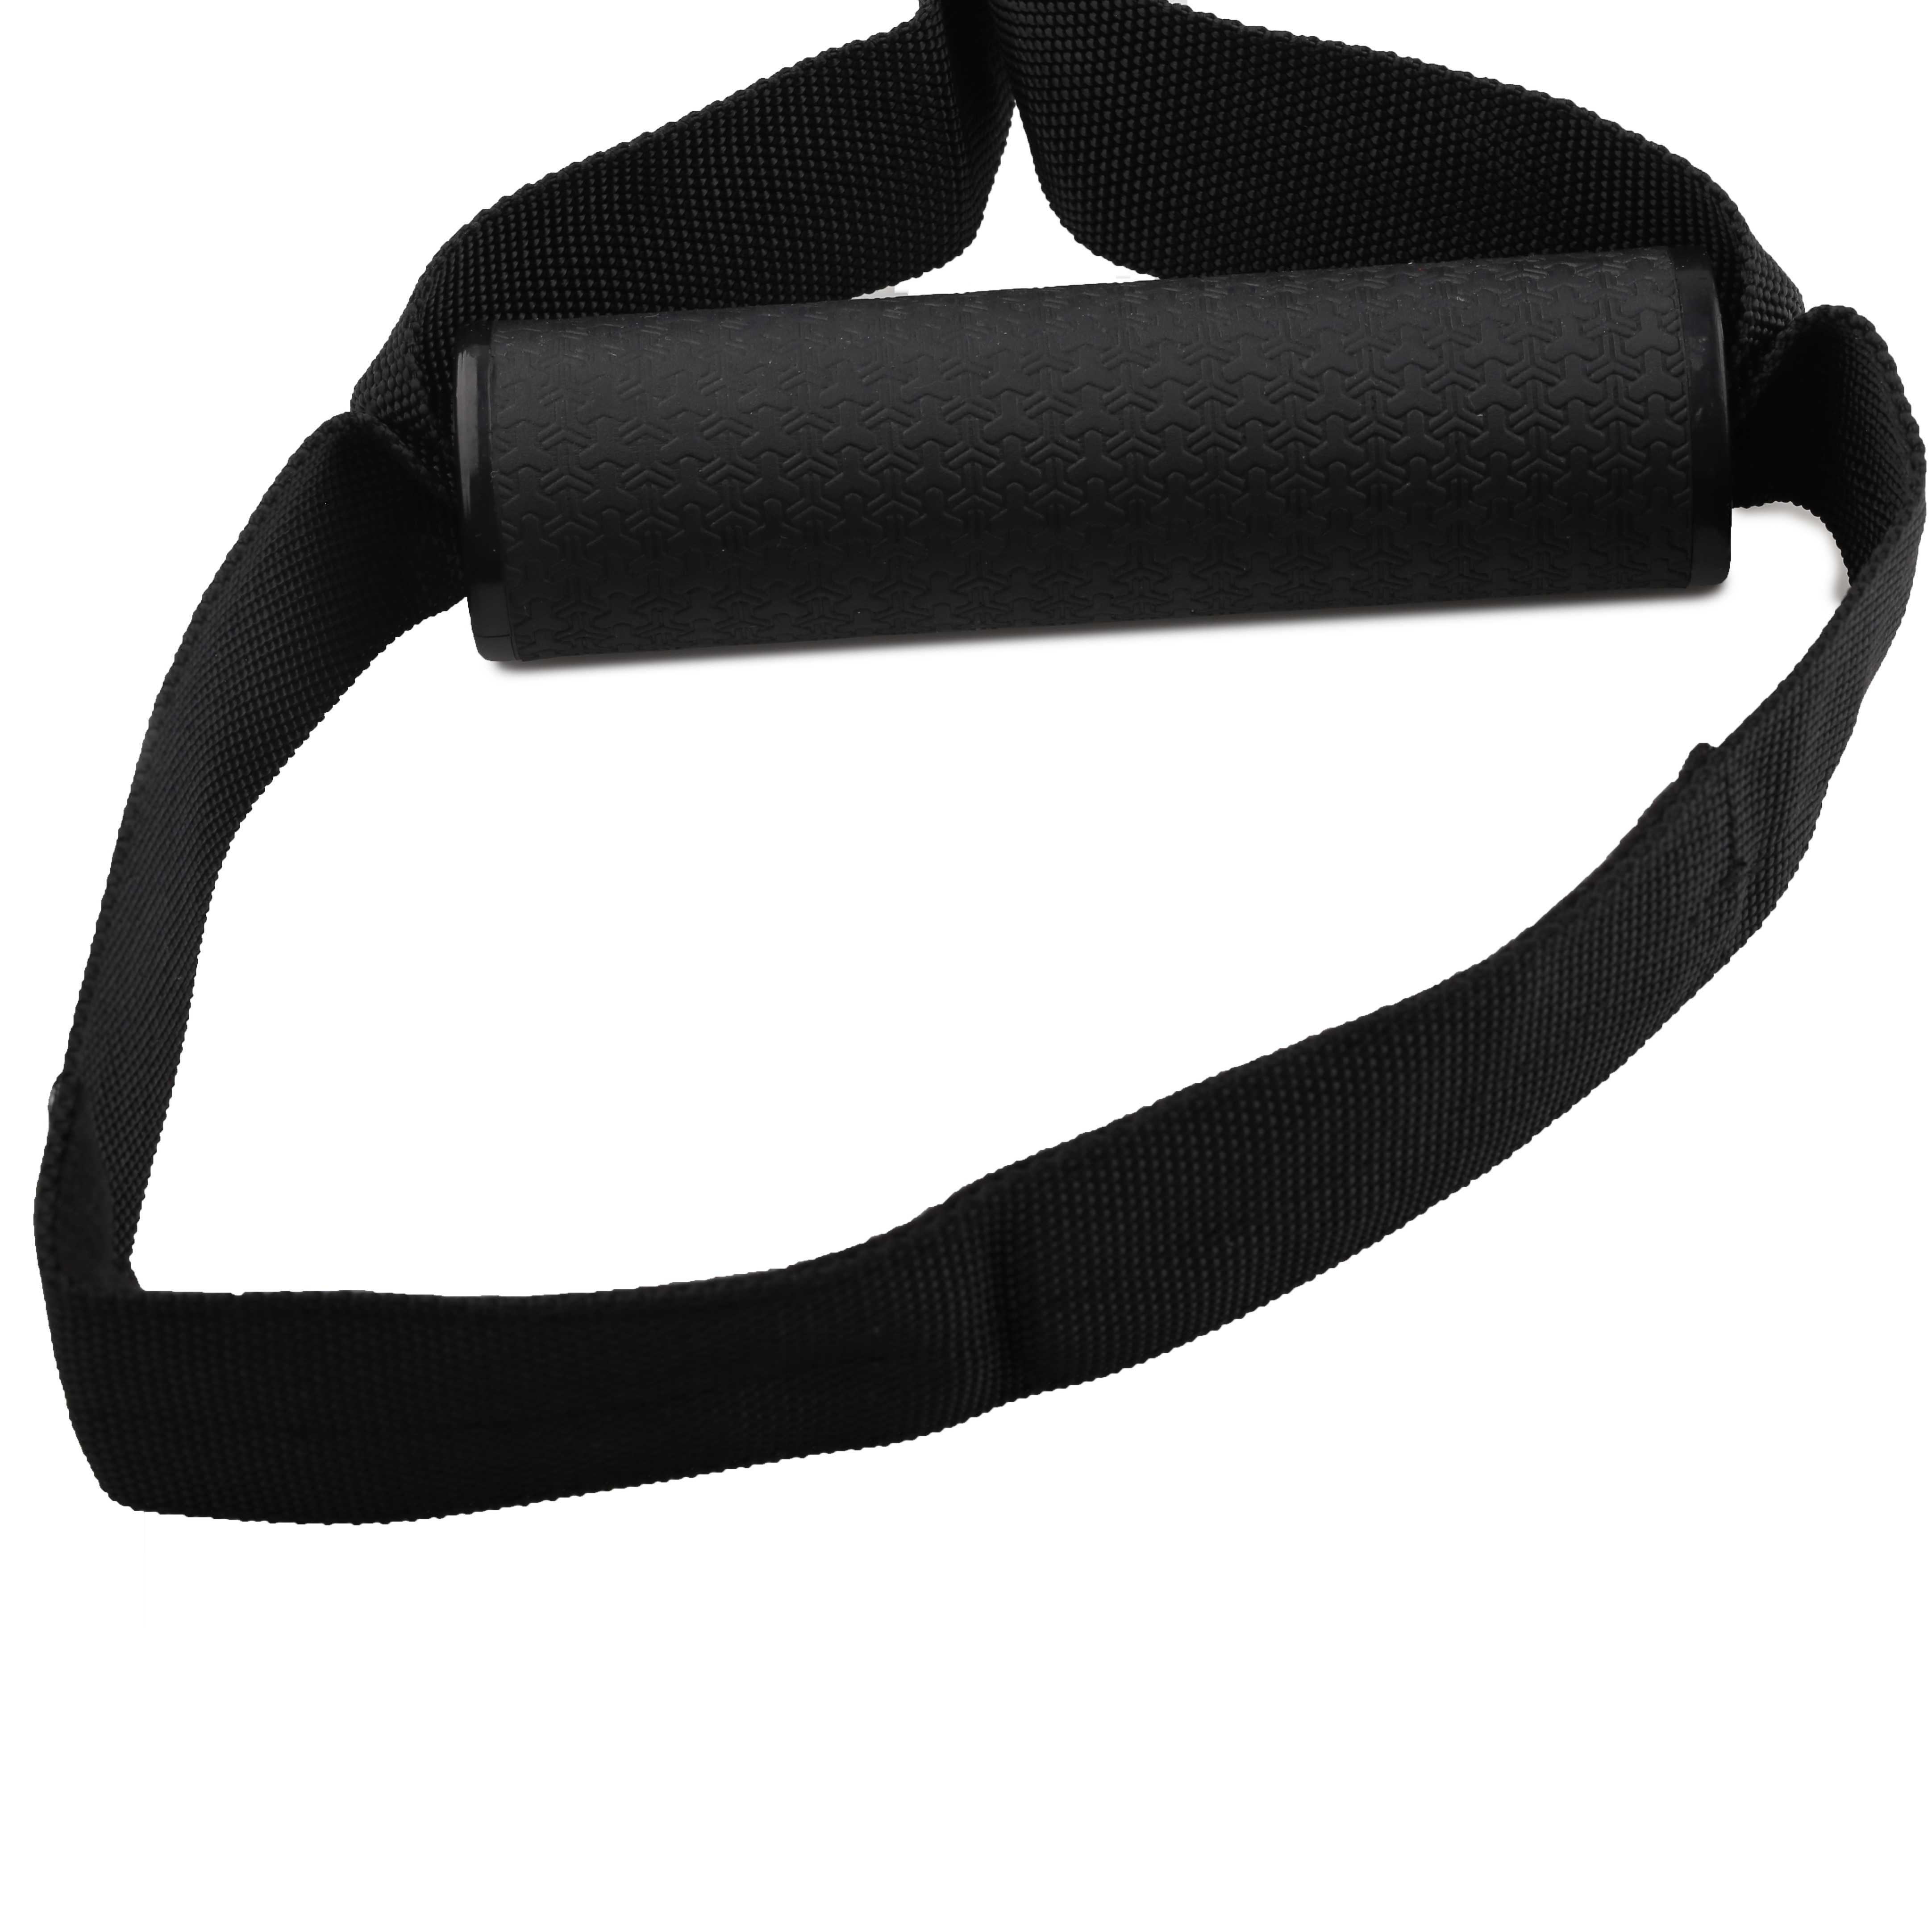 Resistance Bands Fitness Hanging Belt Training Gym workout Suspension Exercise Pull rope Stretching Elastic Straps-5